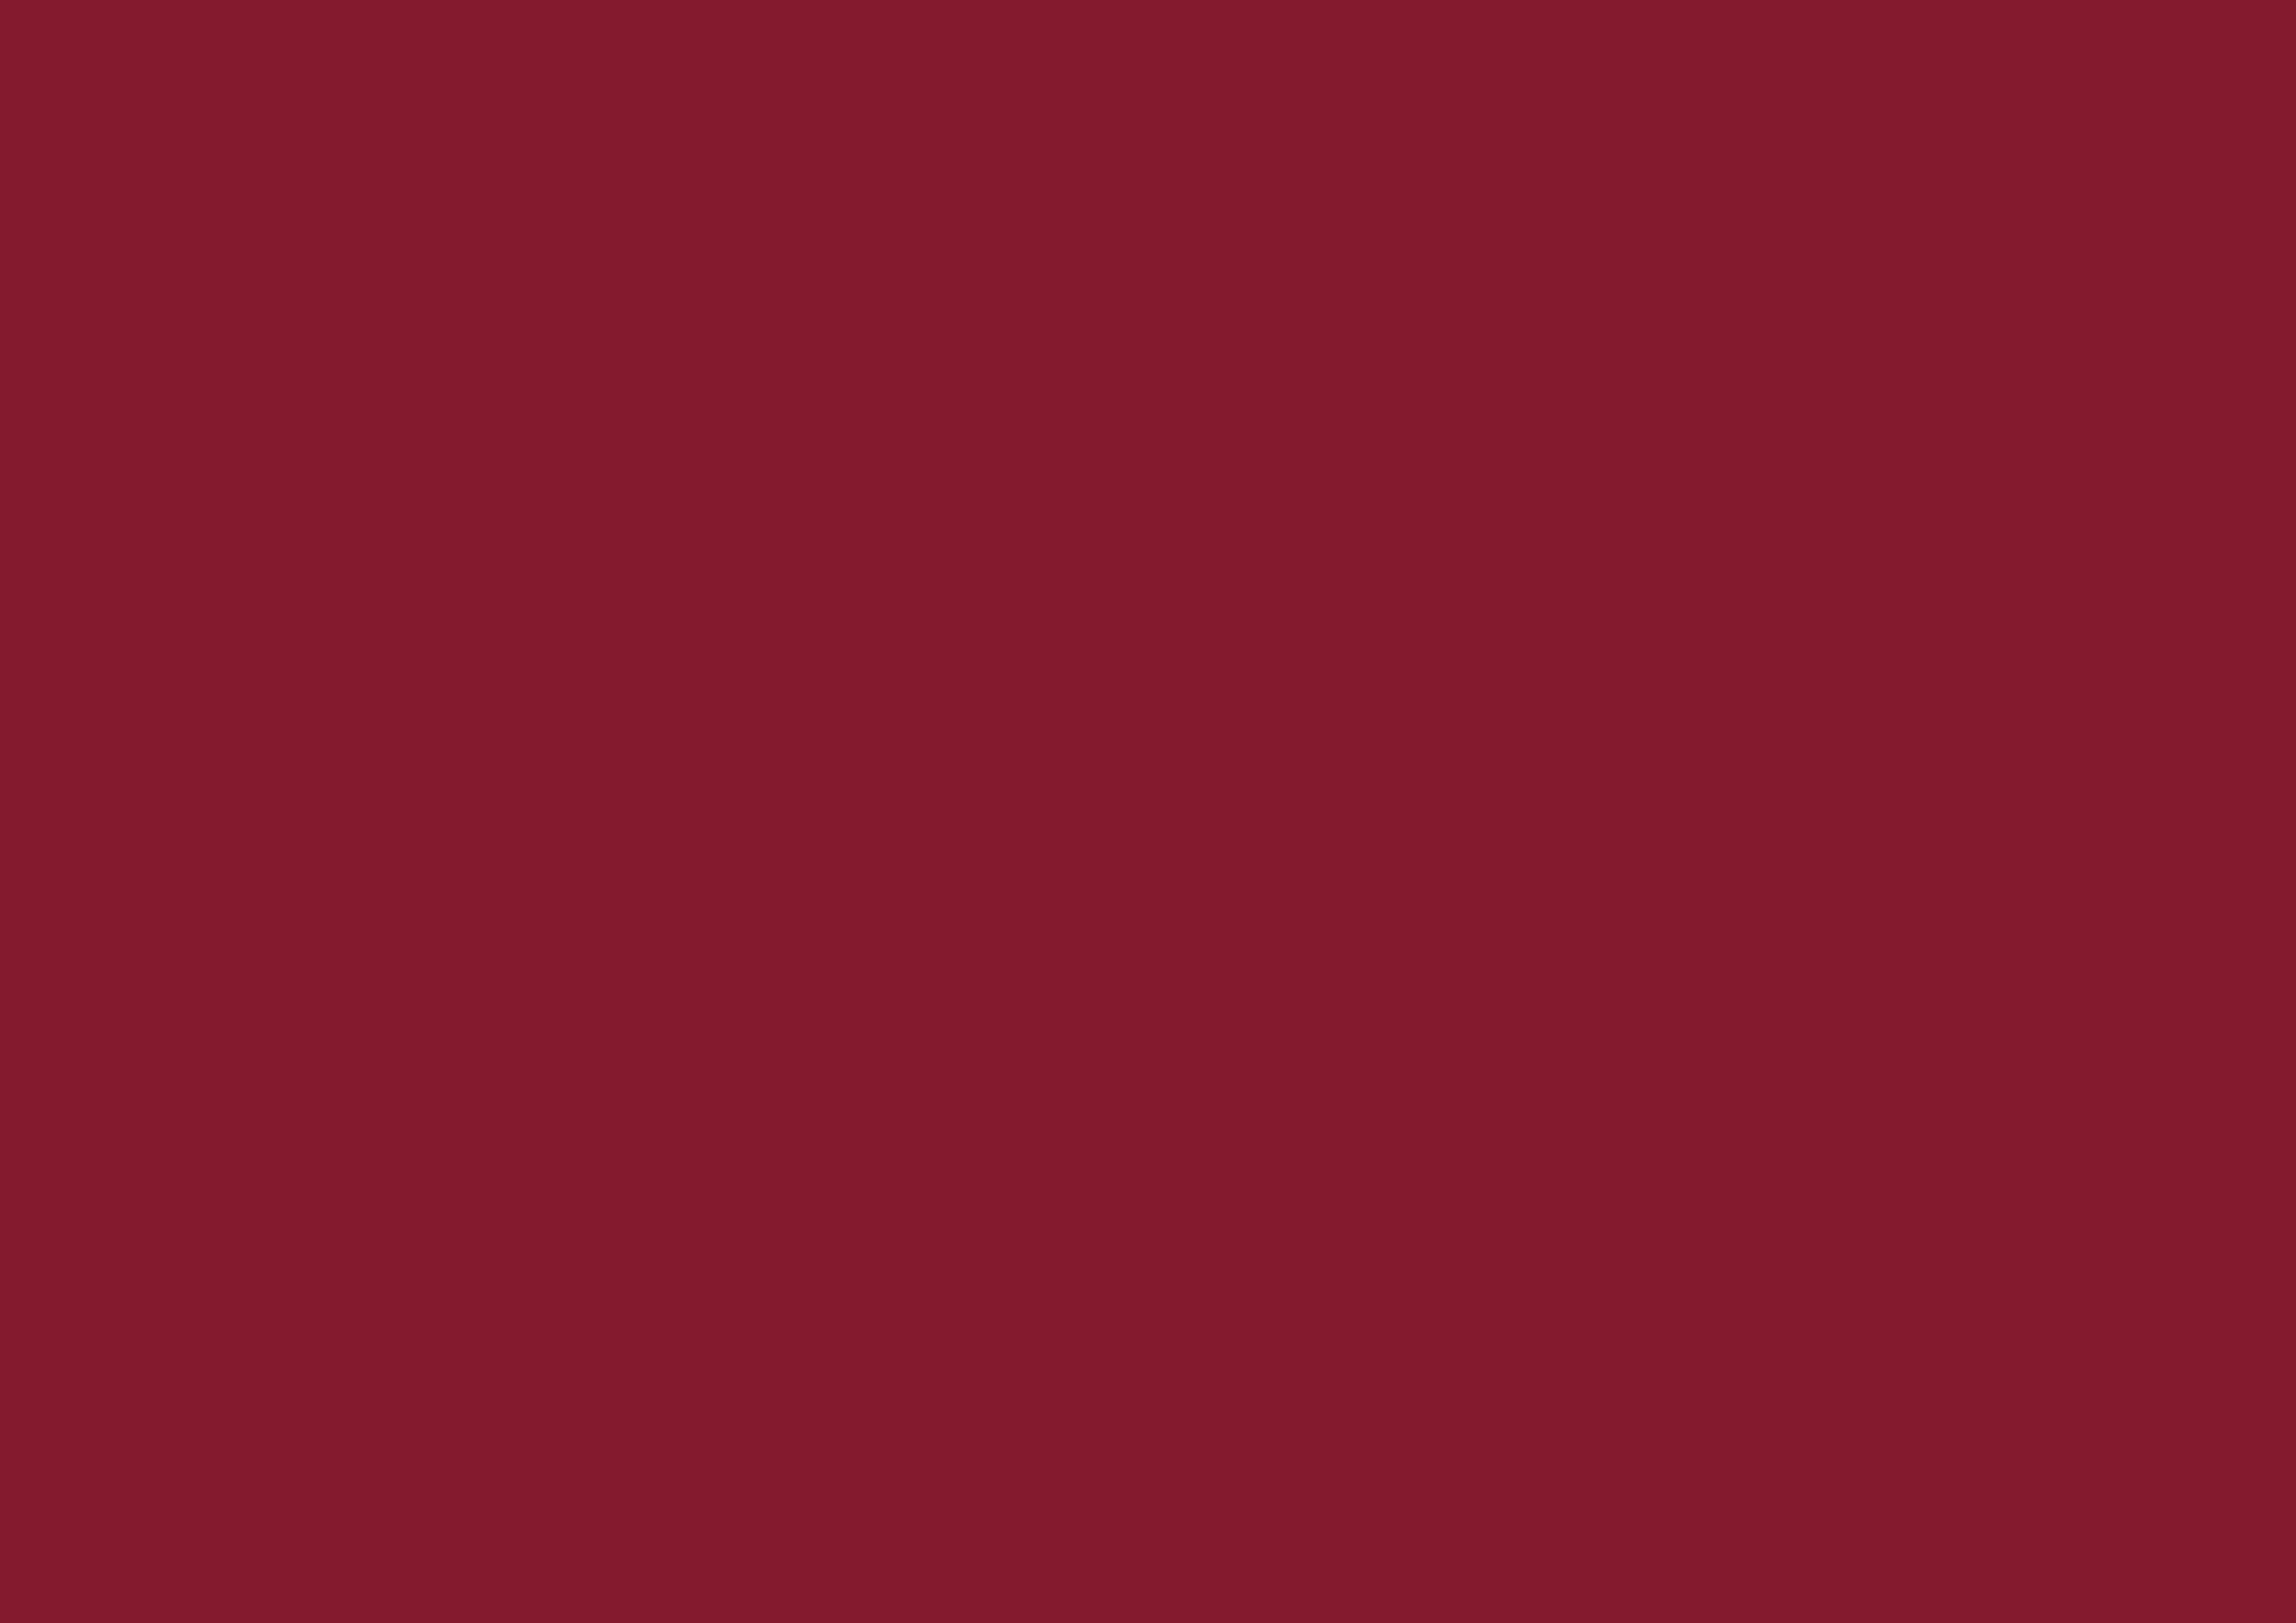 3508x2480 Antique Ruby Solid Color Background